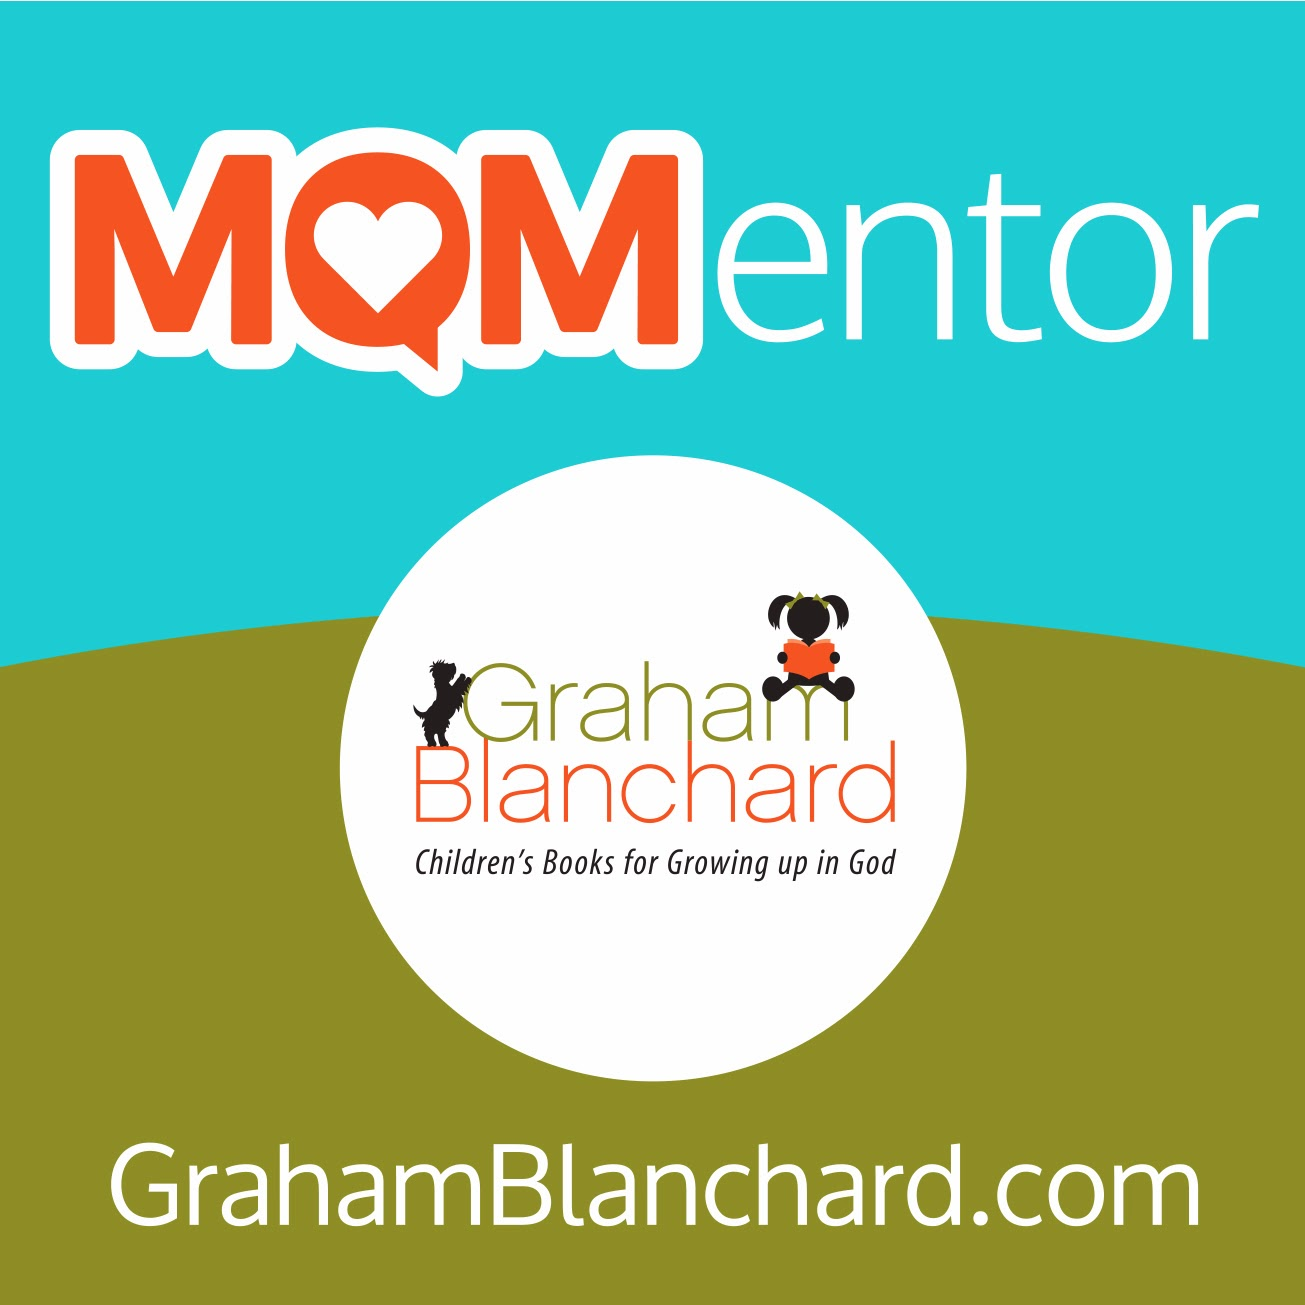 I am a Mom Mentor